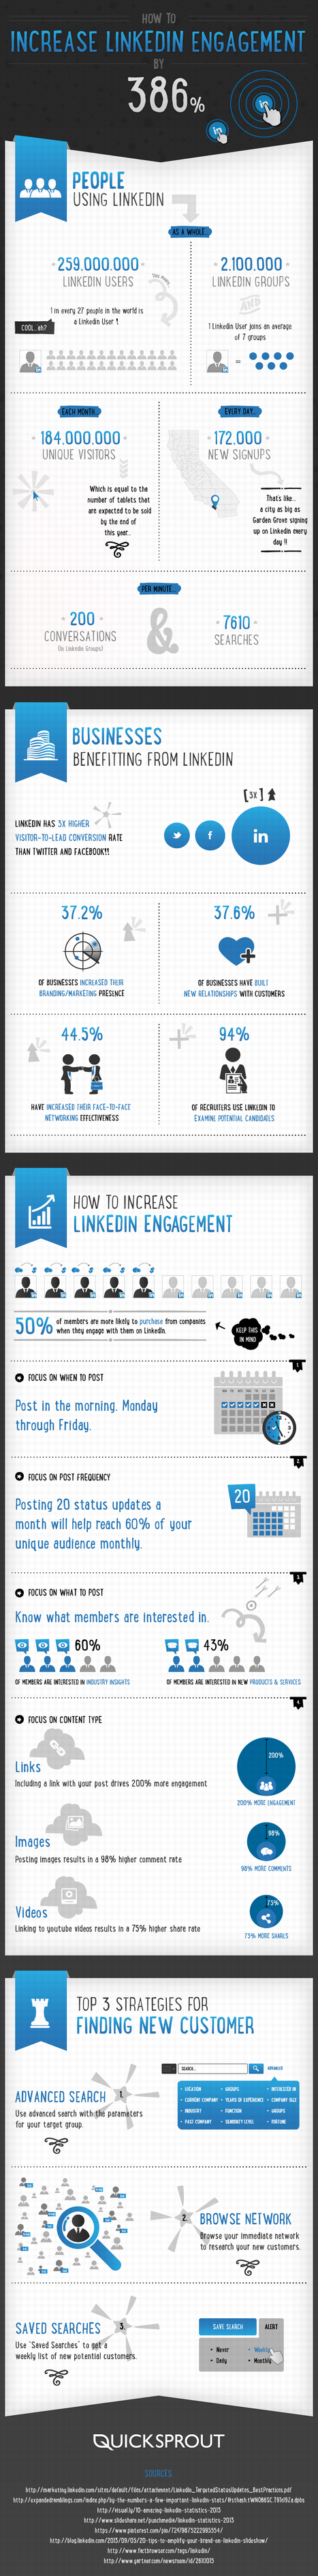 How to Increase LinkedIn Engagement 300 Percent #INFOGRAPHIC | My Blog 2016 | Scoop.it